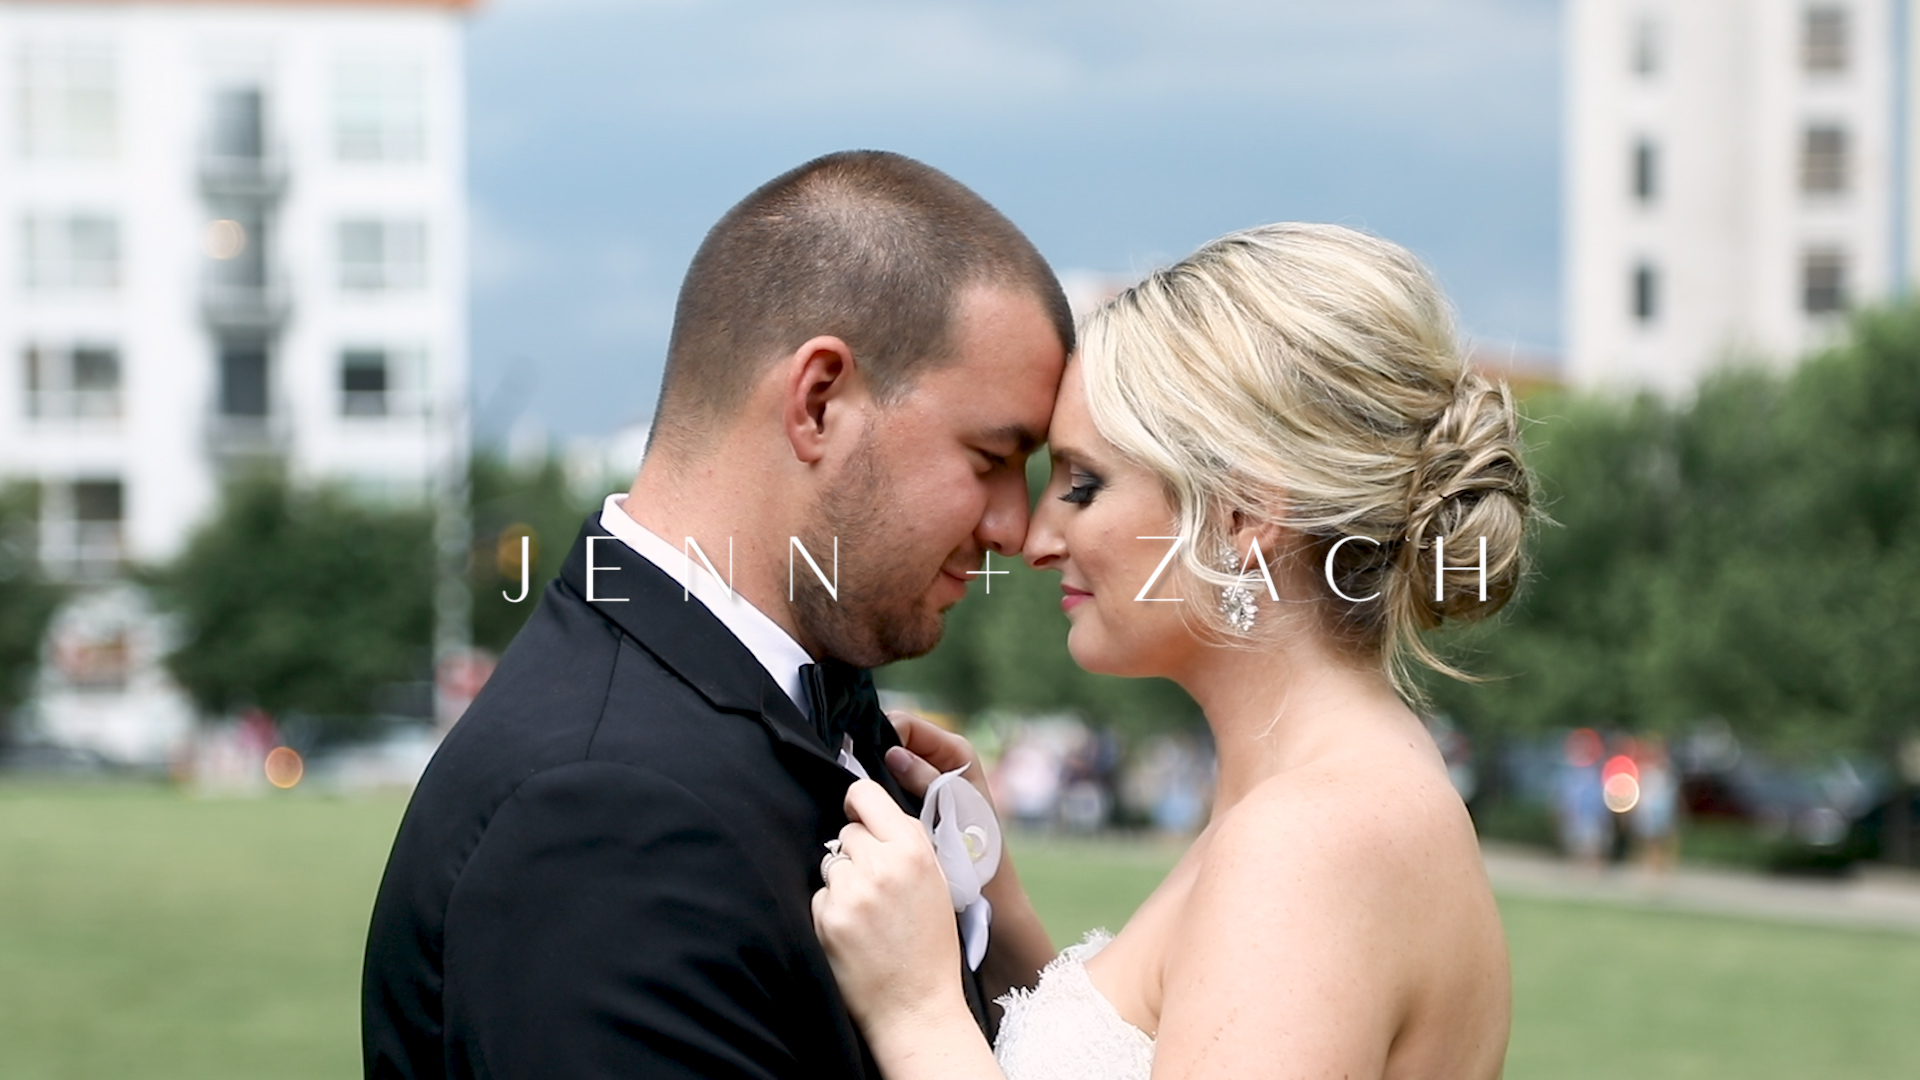 Zach + Jenn | Columbus, Ohio | The Westin Great Southern Columbus